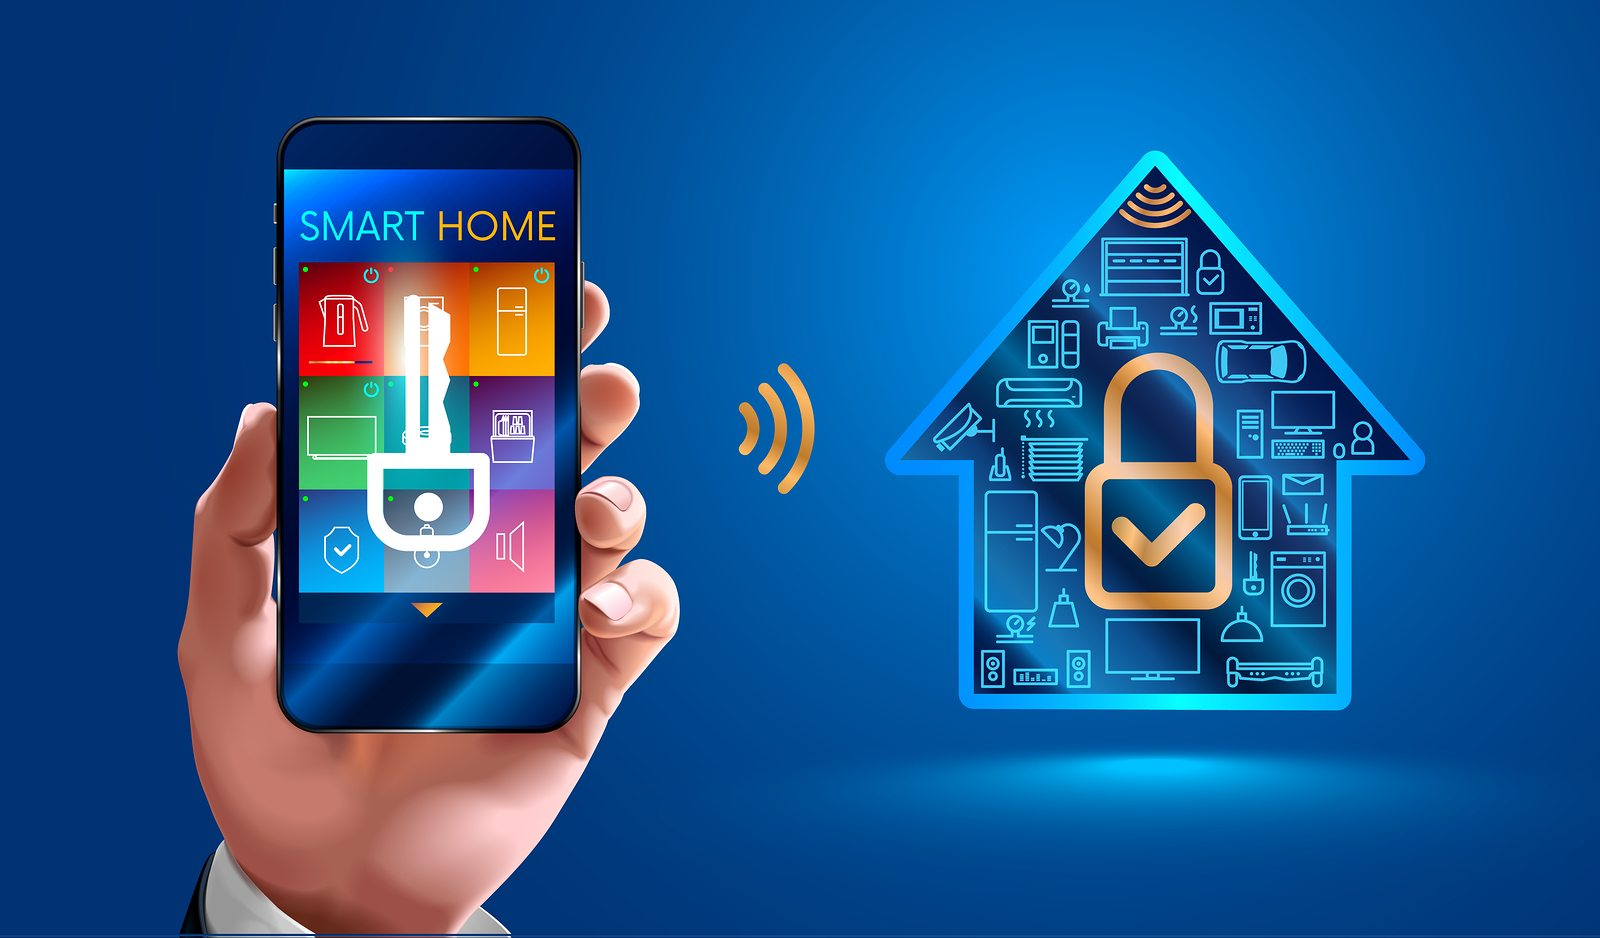 man using smart phone controls smart home devices through a wireless connection. Secure smart home. control of smart home systems is available only from authorized users mobile phone. VECTOR